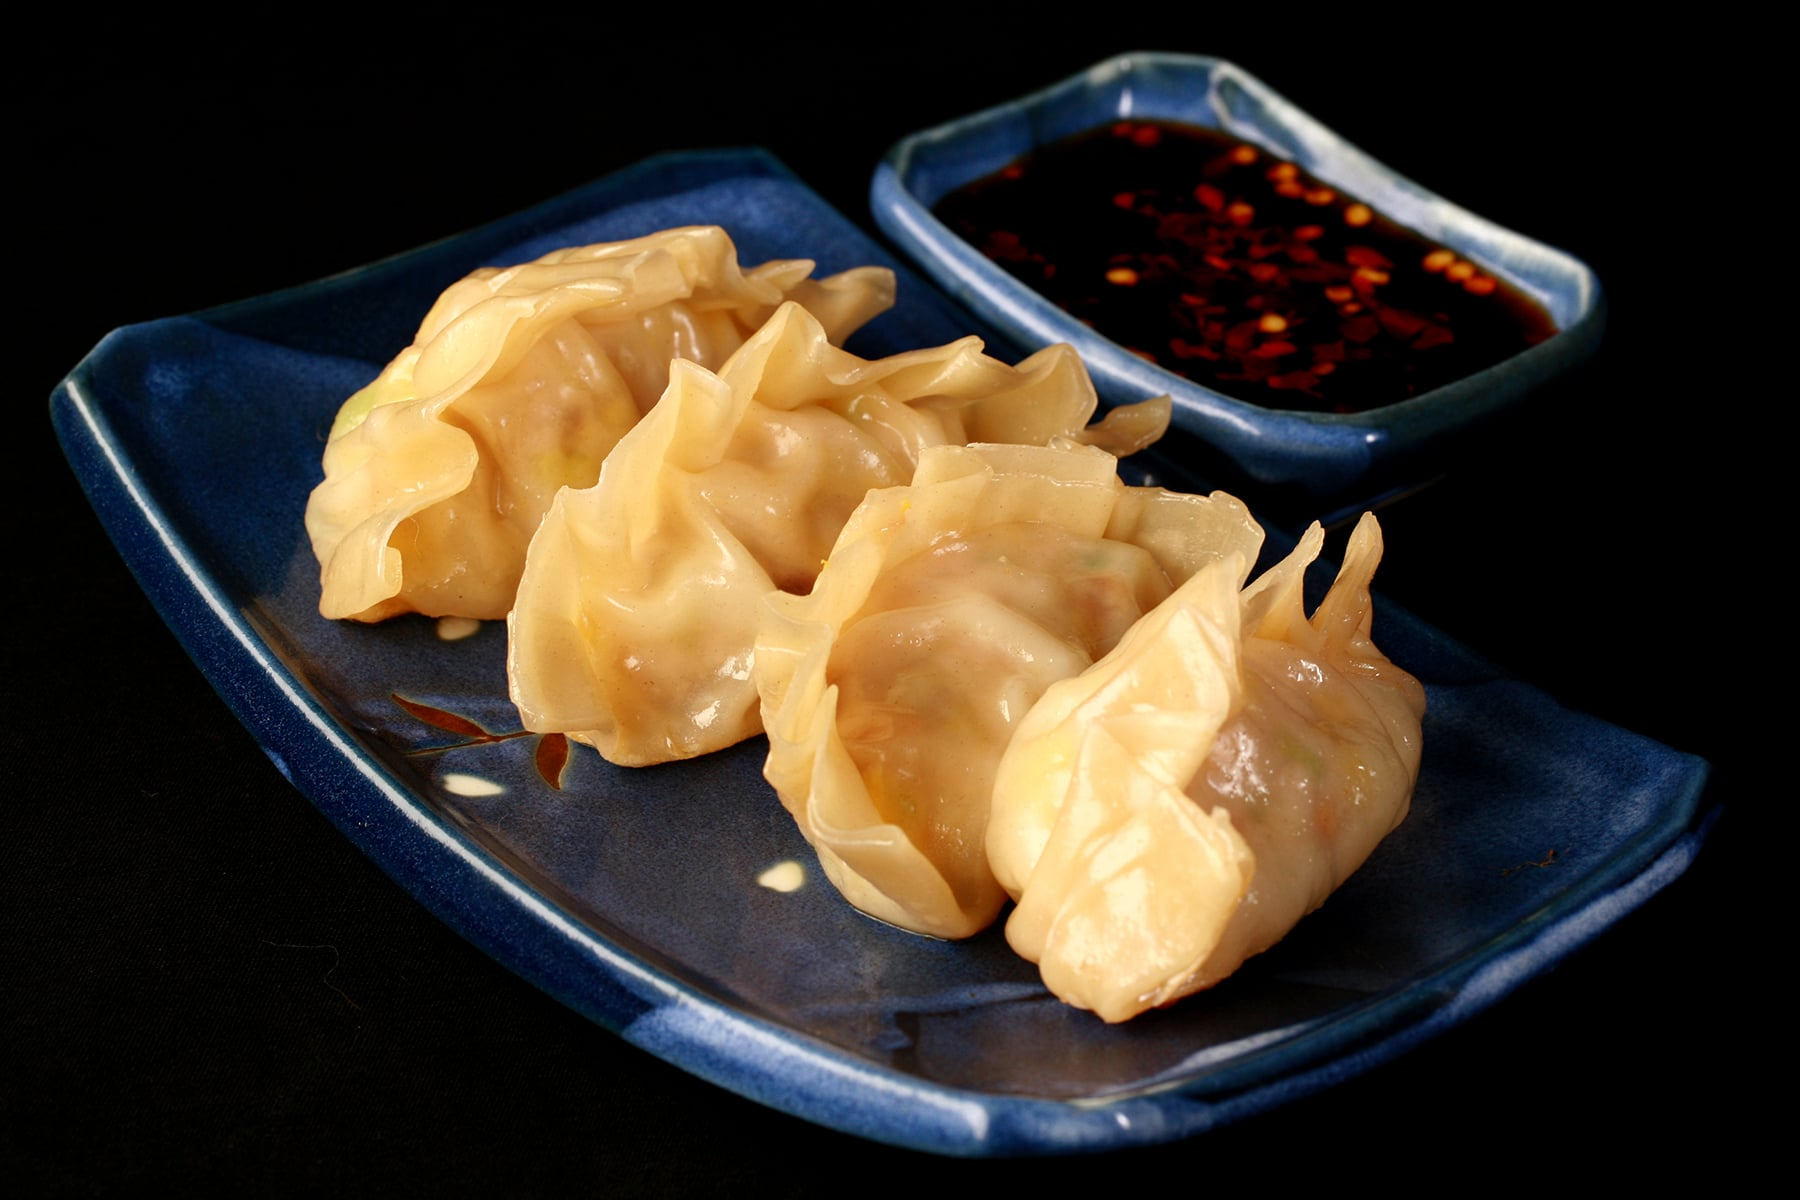 4 homemade potstickers on a blue rectangular plate, with a small dish of pot sticker sauce next to it.